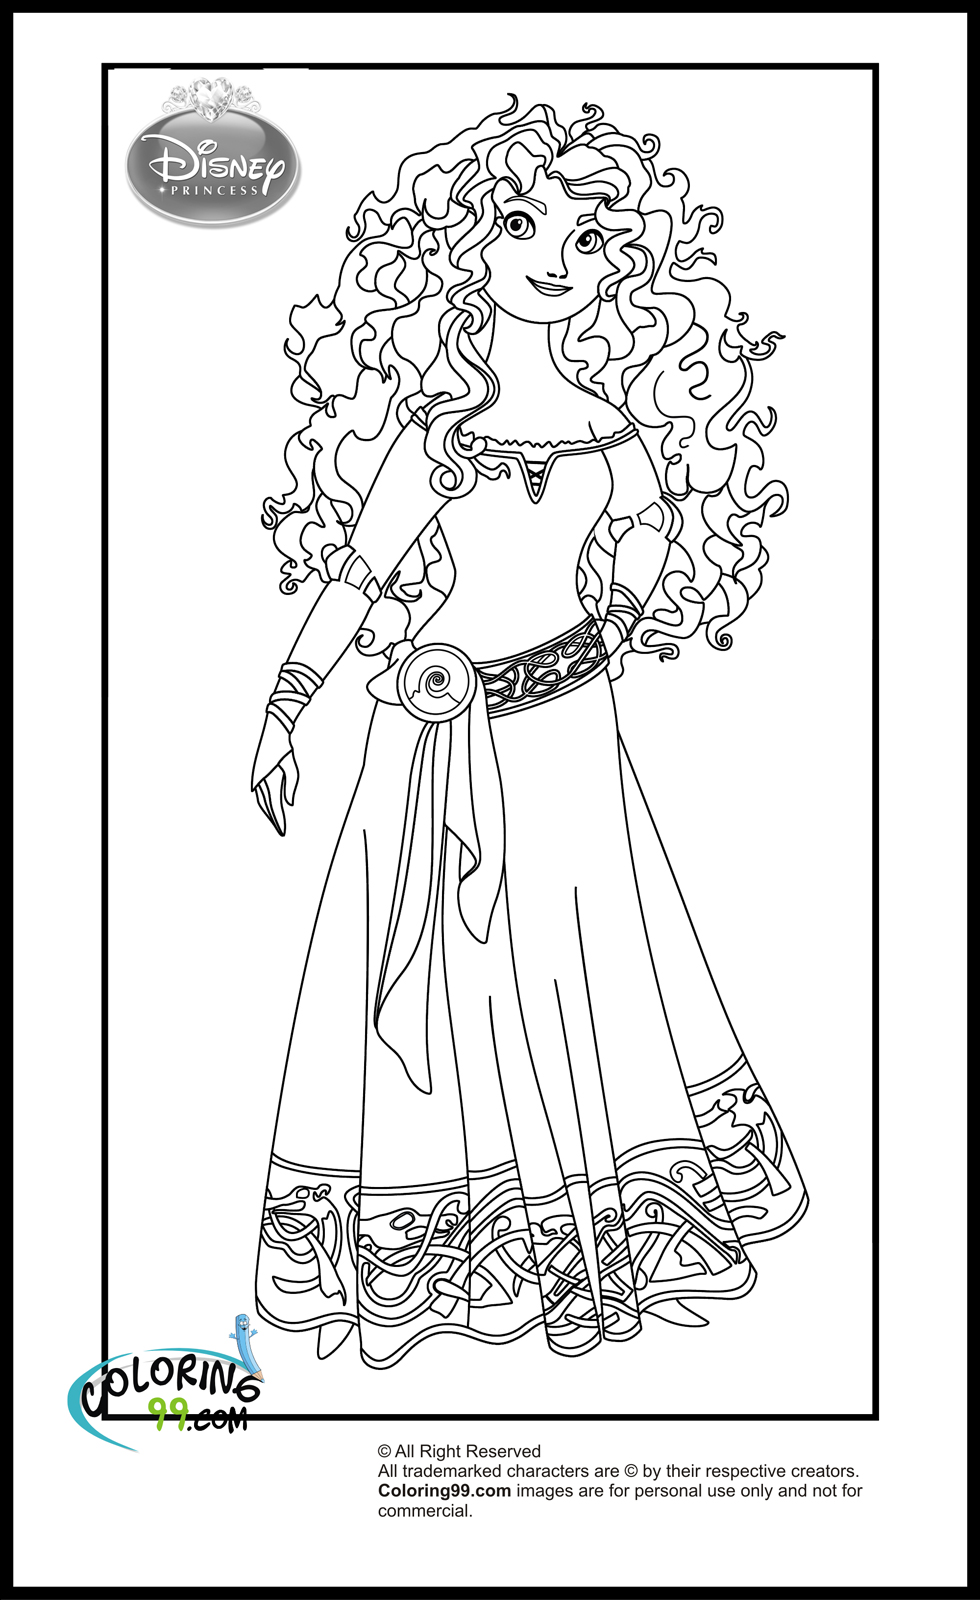 Fans Request - Disney Princess with Merida from Brave ... | coloring pages for disney princesses